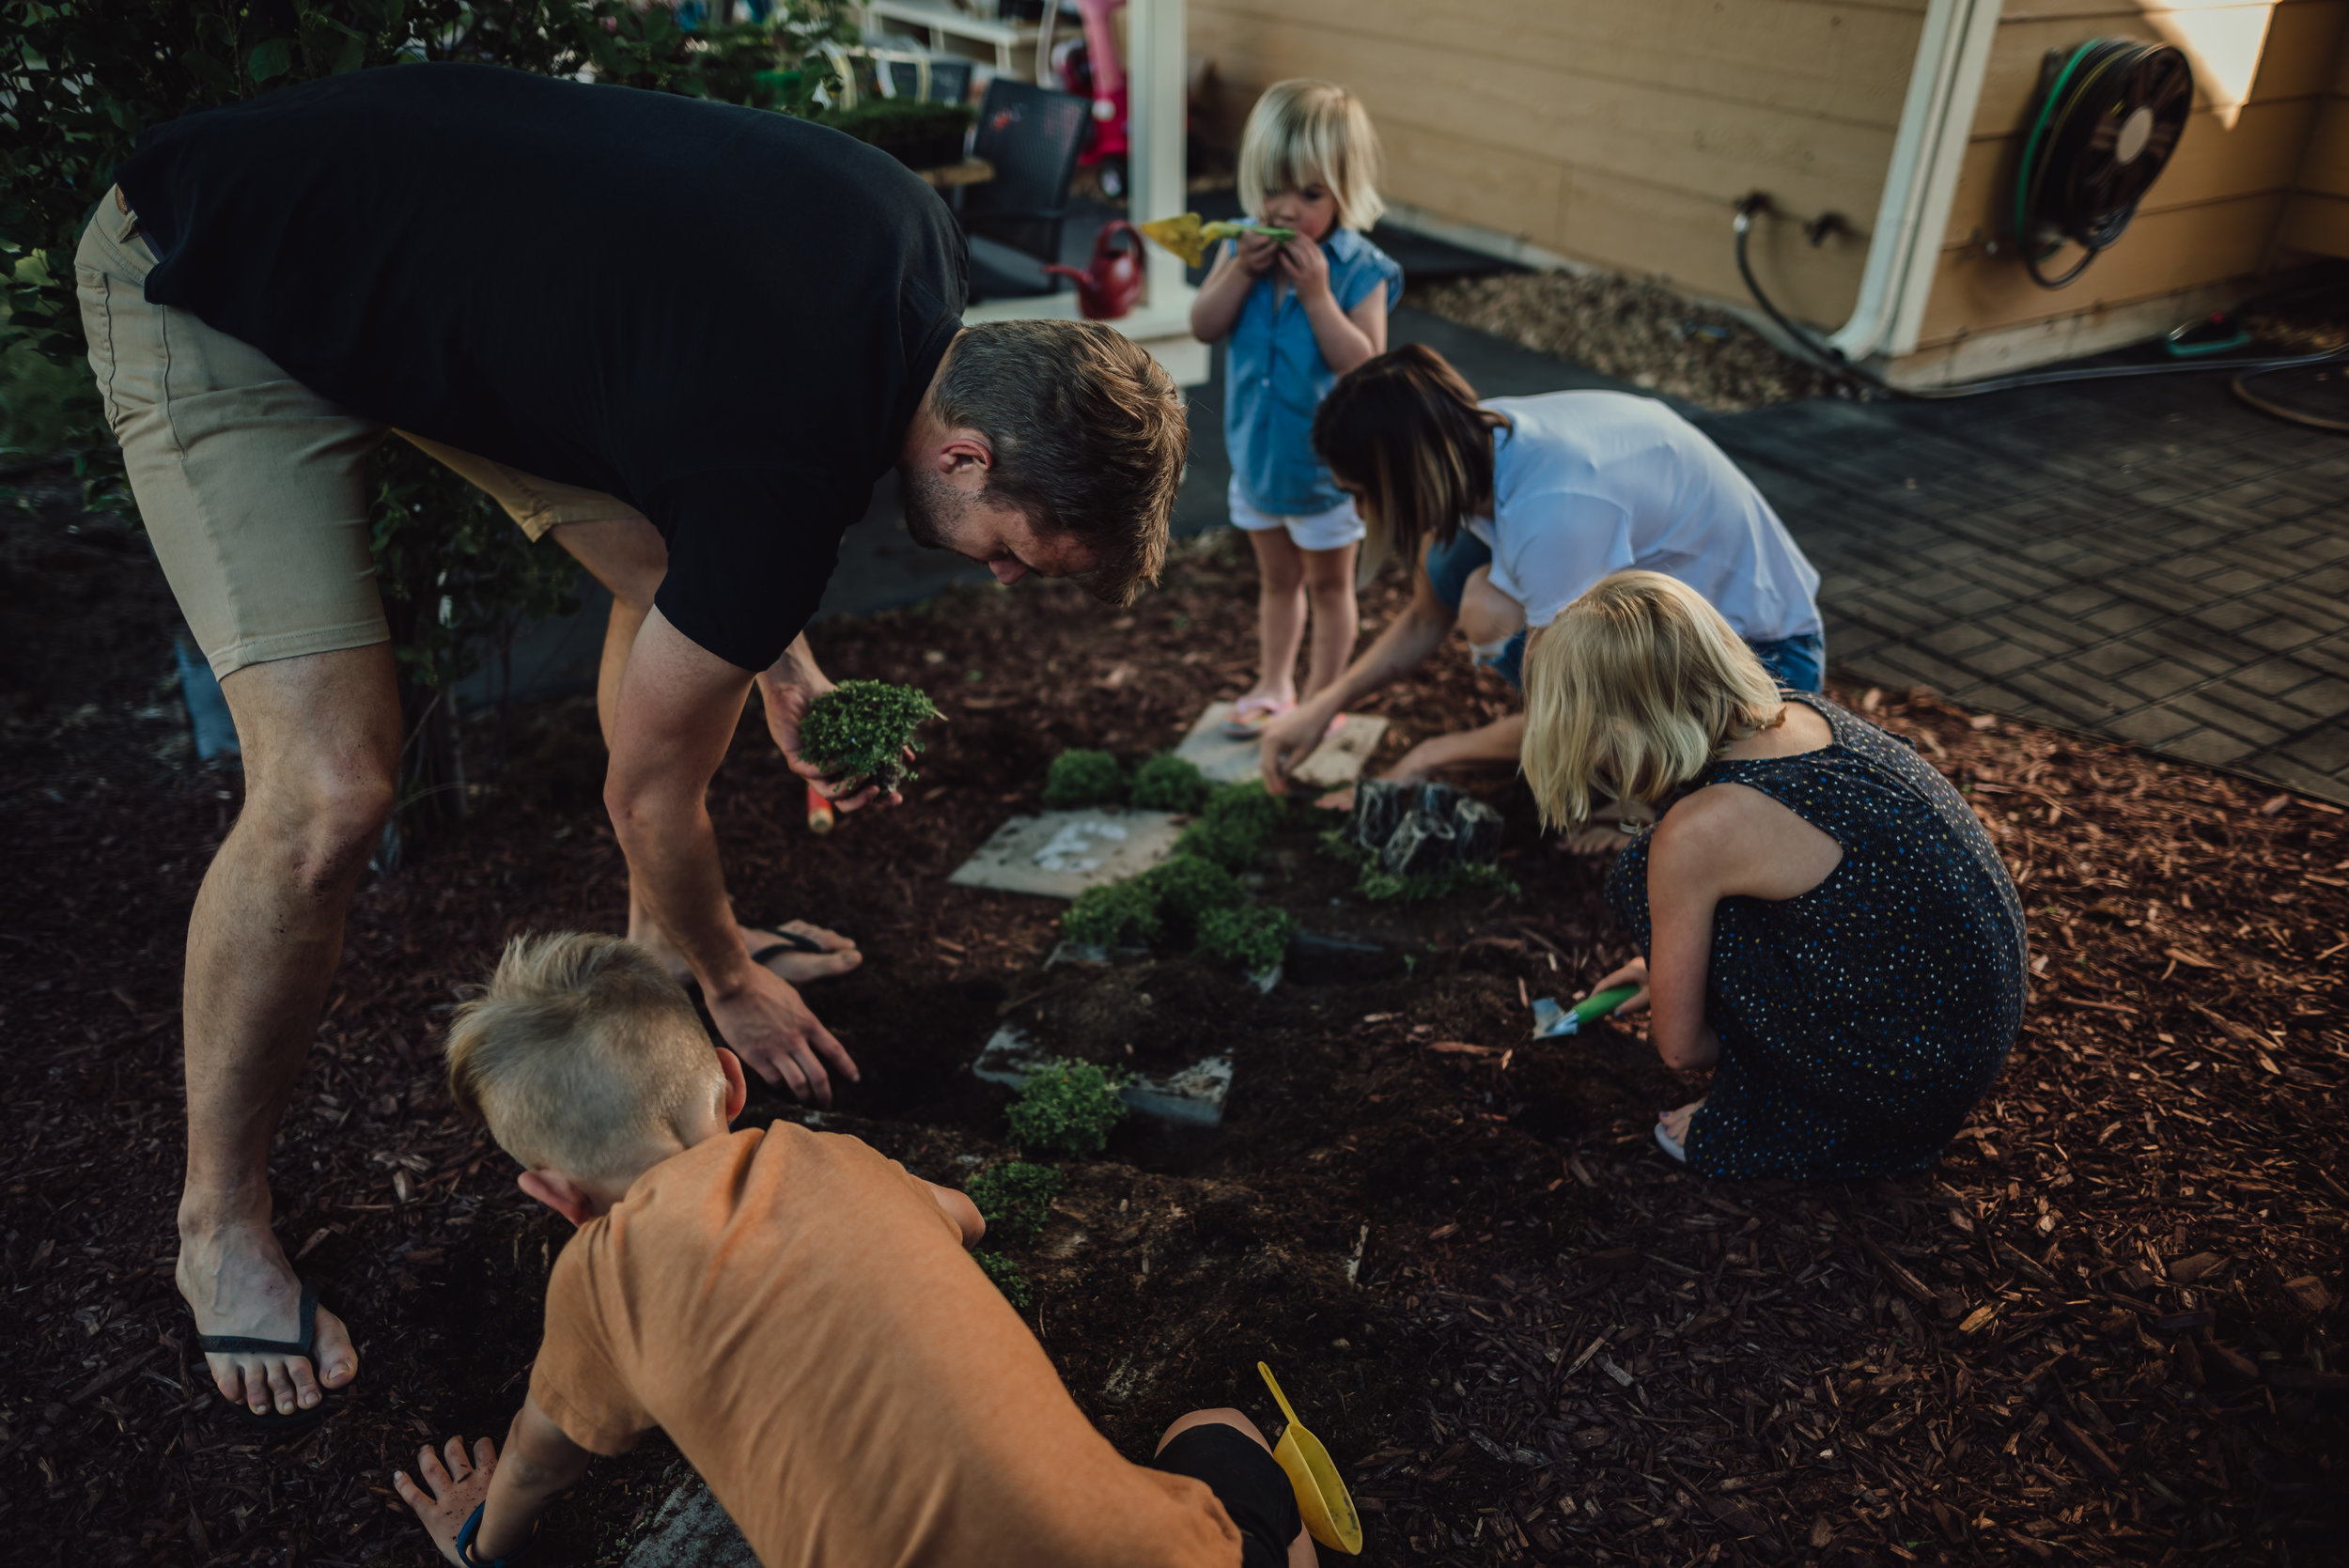 colorado springs family lifestyle gardening photography-35.jpg